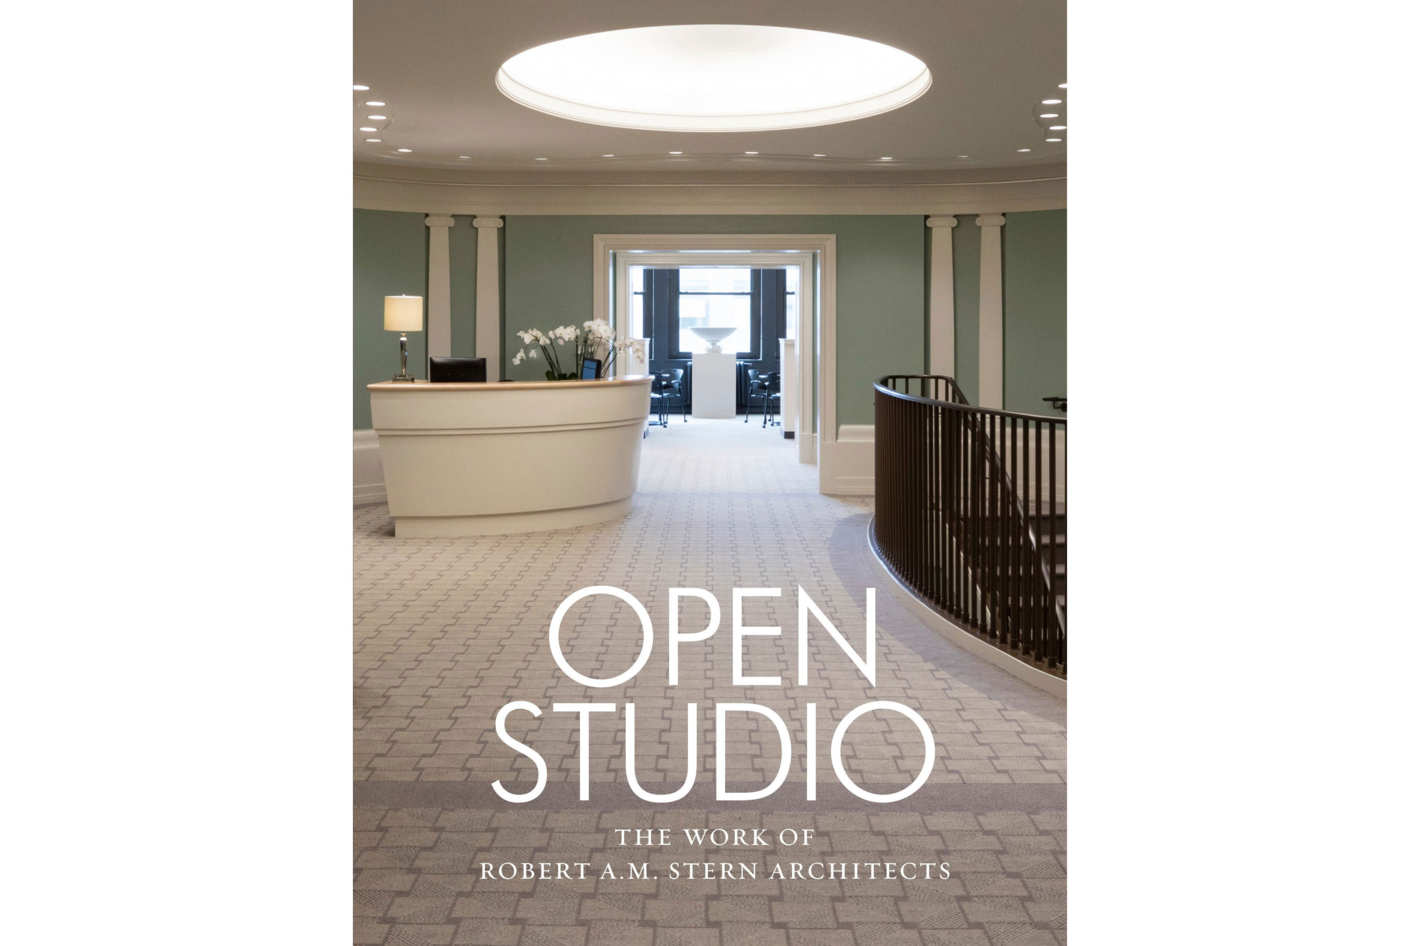 <em>Open Studio: The Work of Robert A.M. Stern Architects</em> by Robert A.M. Stern, Shannon Hohlbein, and Peter Morris Dixon